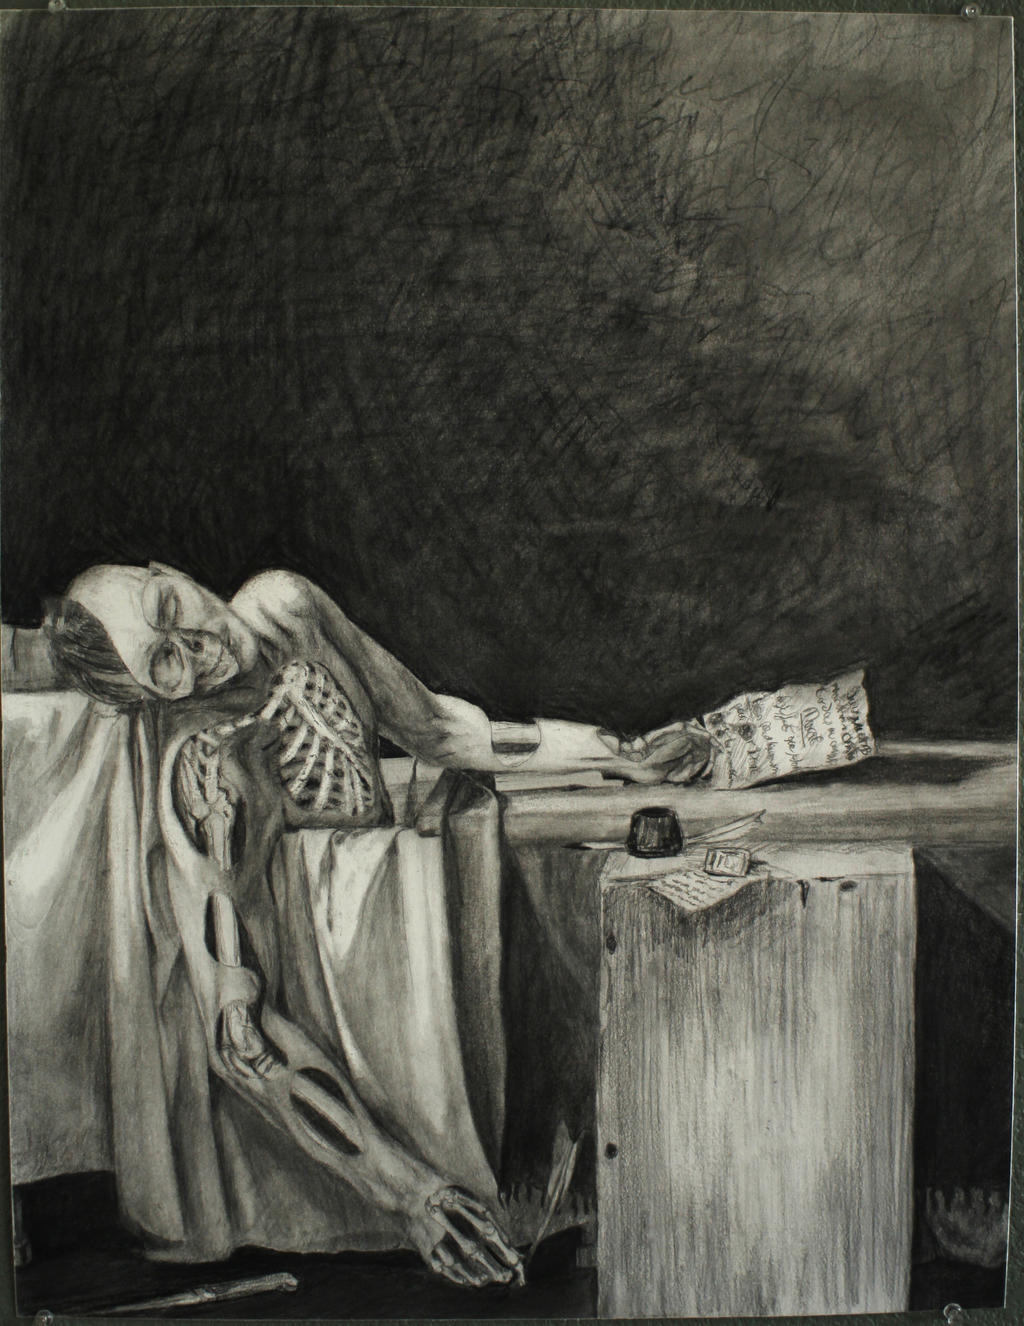 an analysis of the death of marat French radical jean-paul marat famously died in his bathtub in 1793, stabbed by  charlotte corday to put an end to his revolutionary activities.